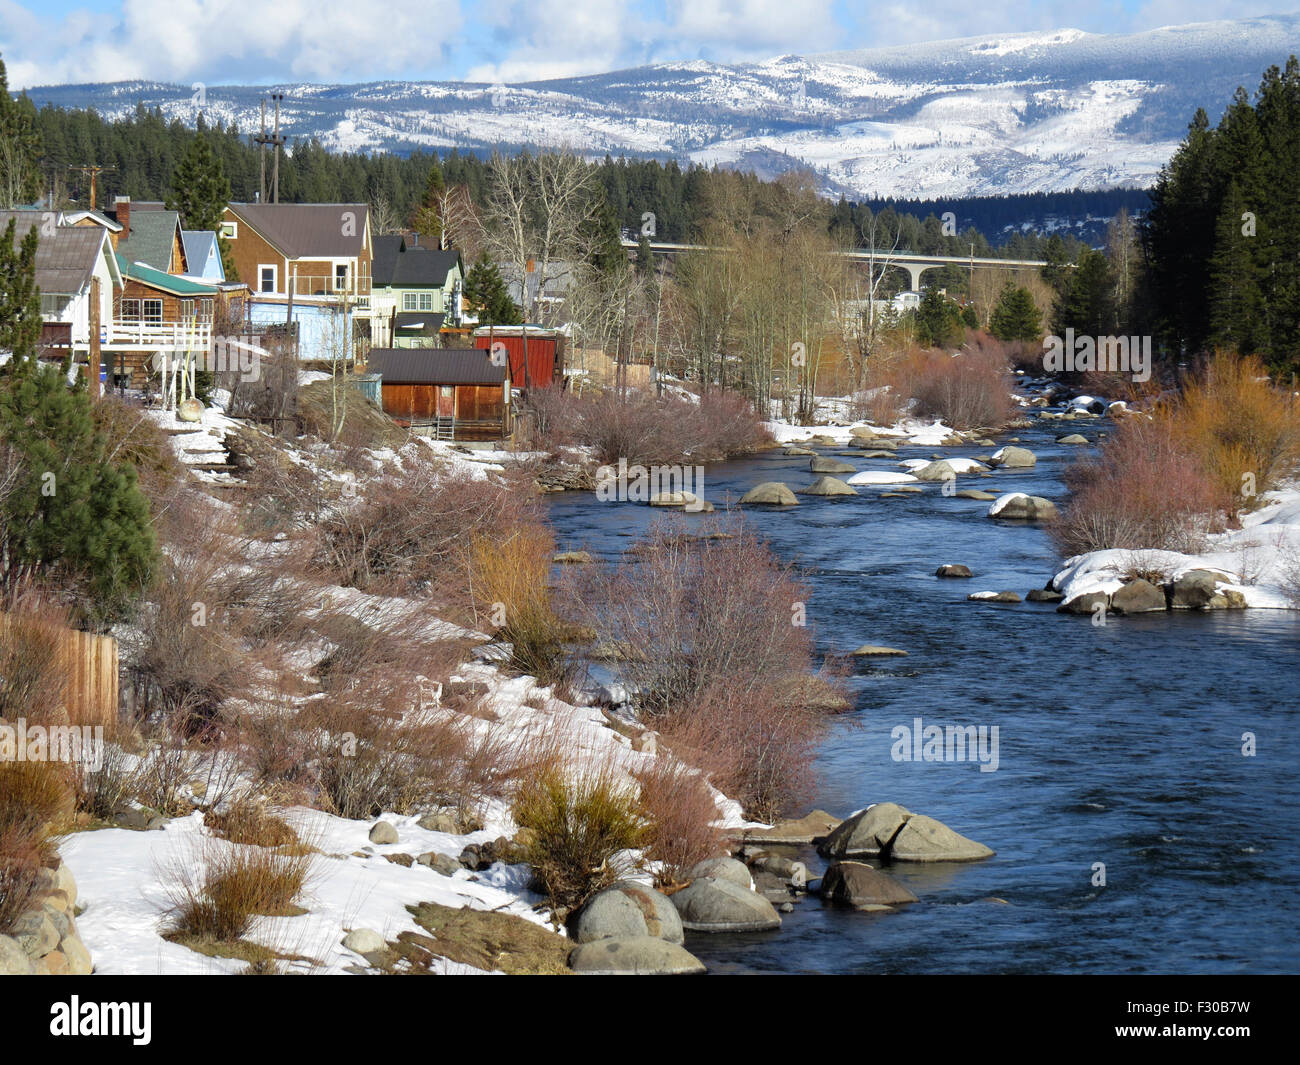 View of the Truckee River - Stock Image